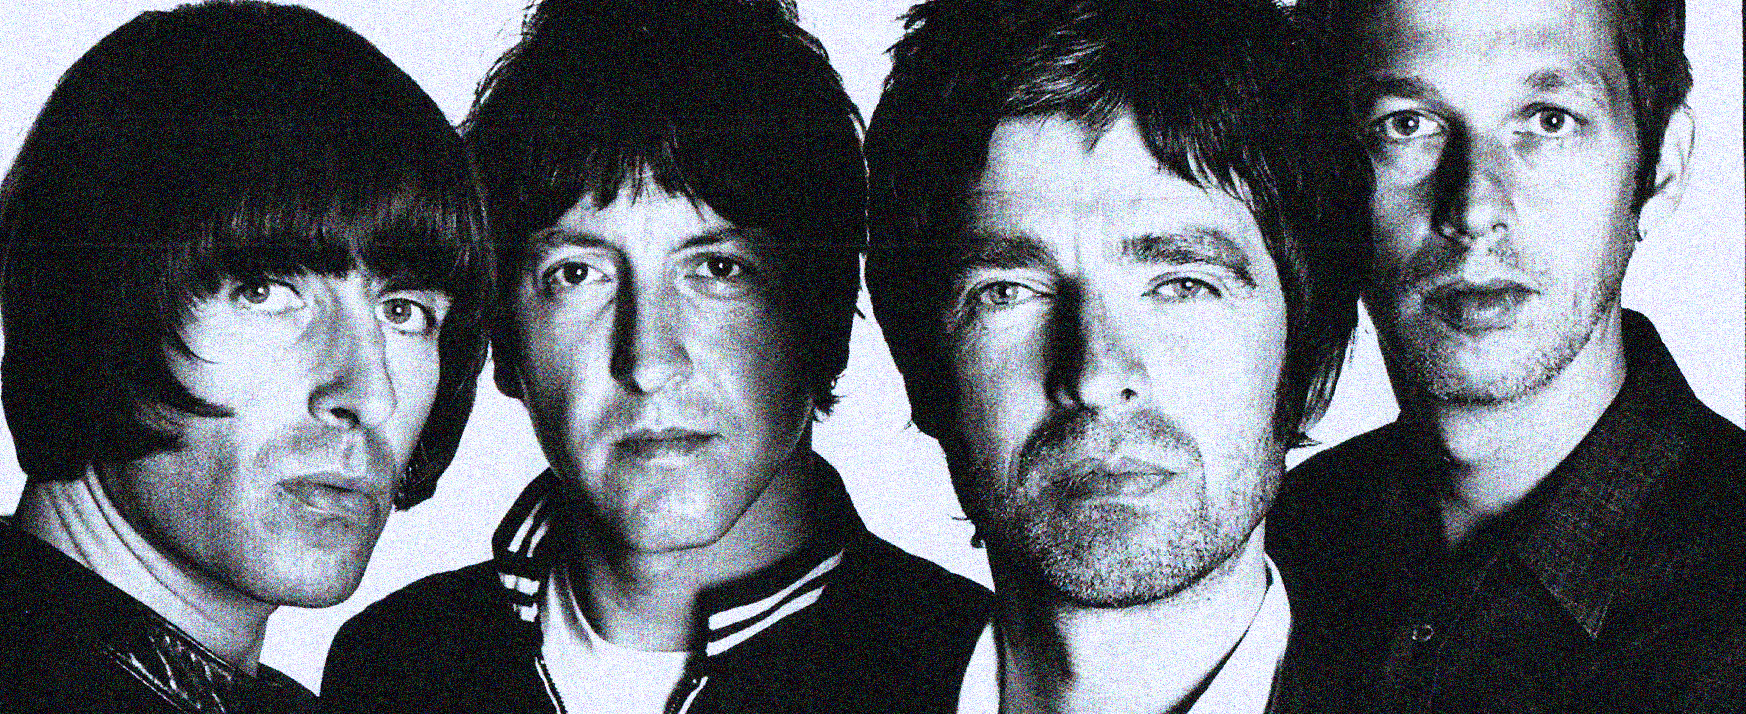 Oasis - live in Cardiff - 1996